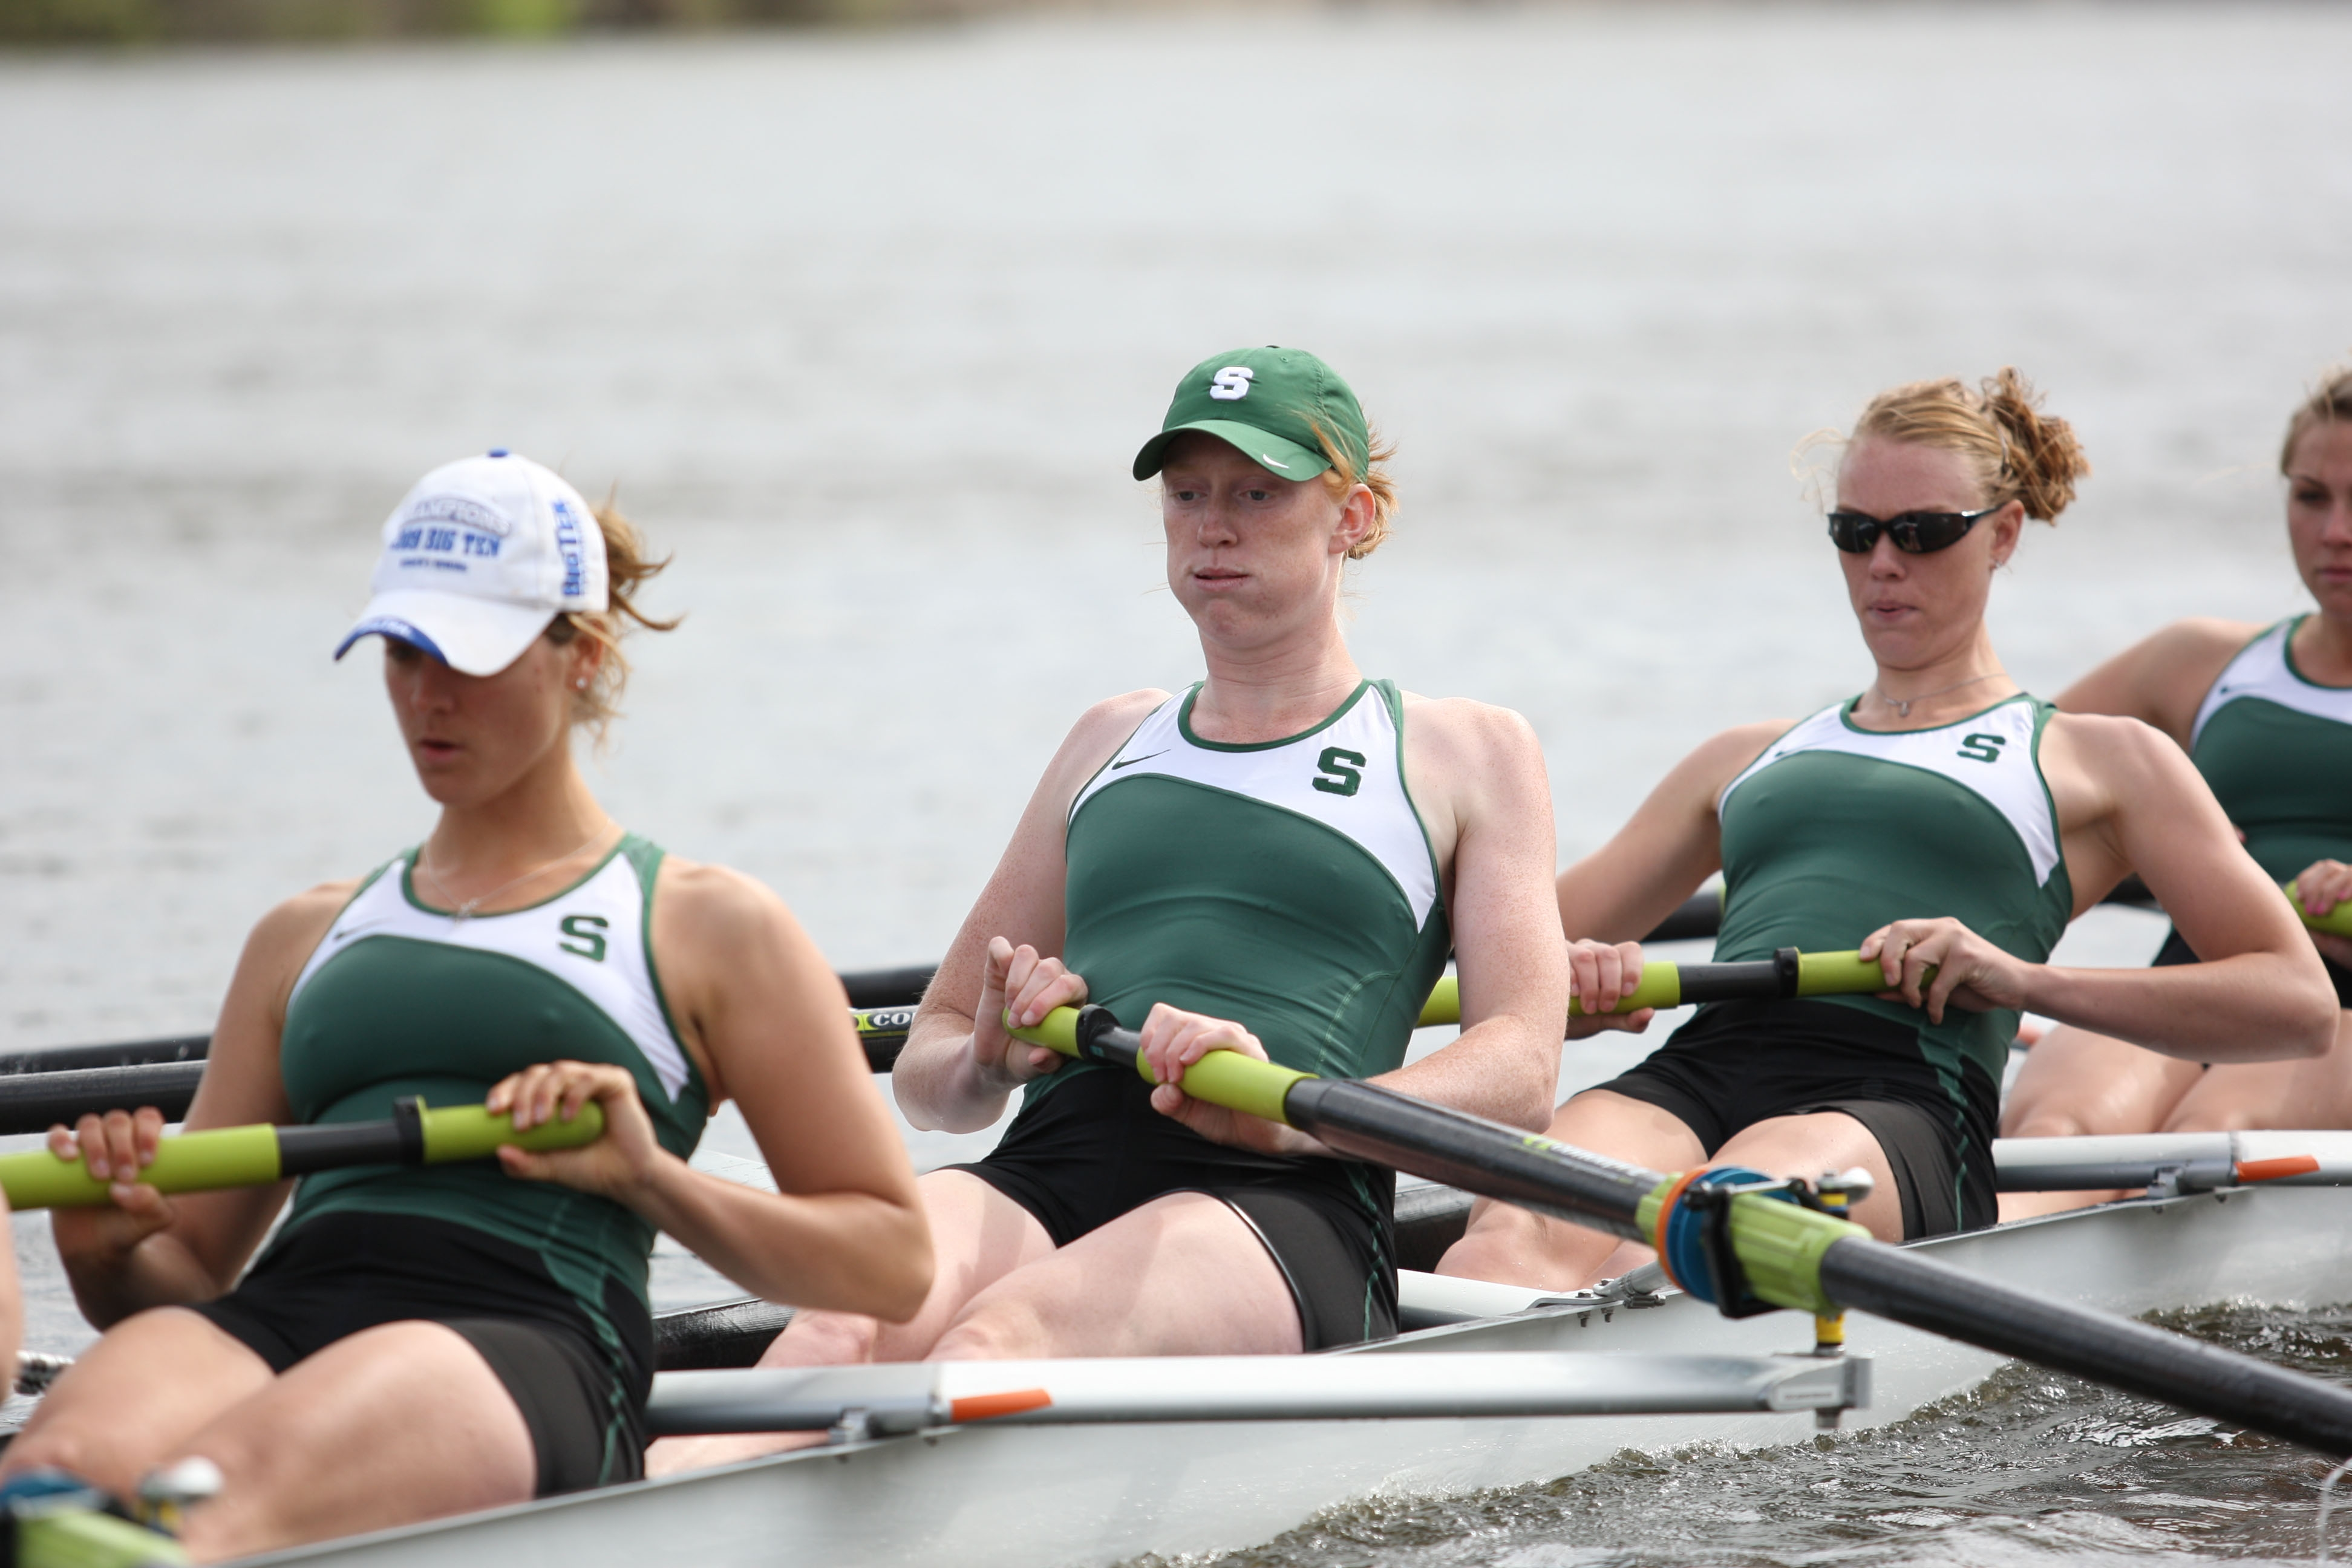 Emily Regan will be a member of the women's eight rowing team at the Rio Olympics.